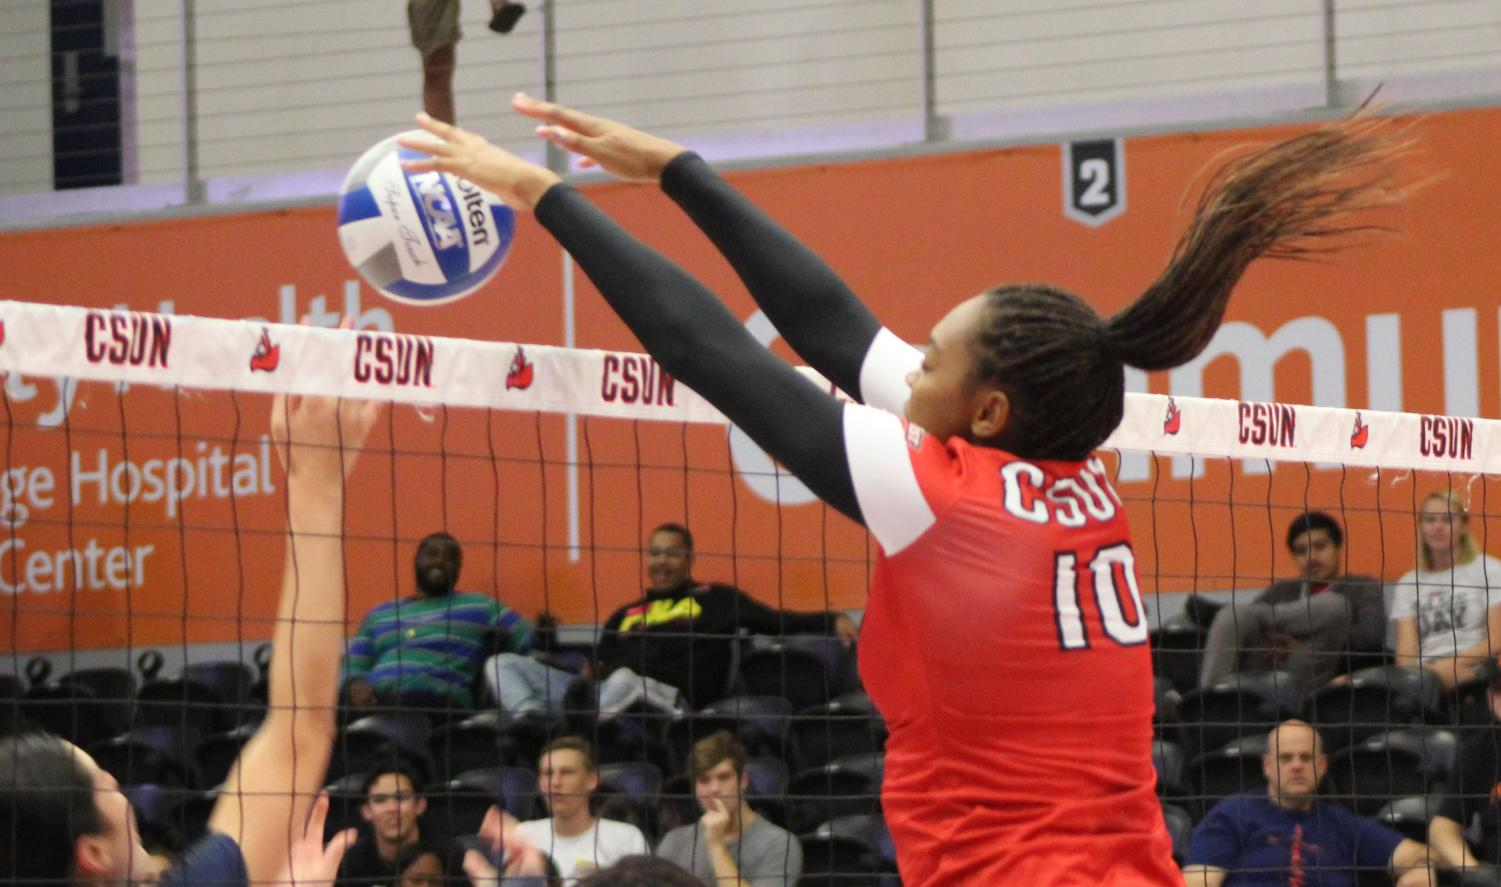 Morgan Salone blocks a ball against Cal State Fullerton in the Matadome on Oct. 19 Photo credit: Serena Christie